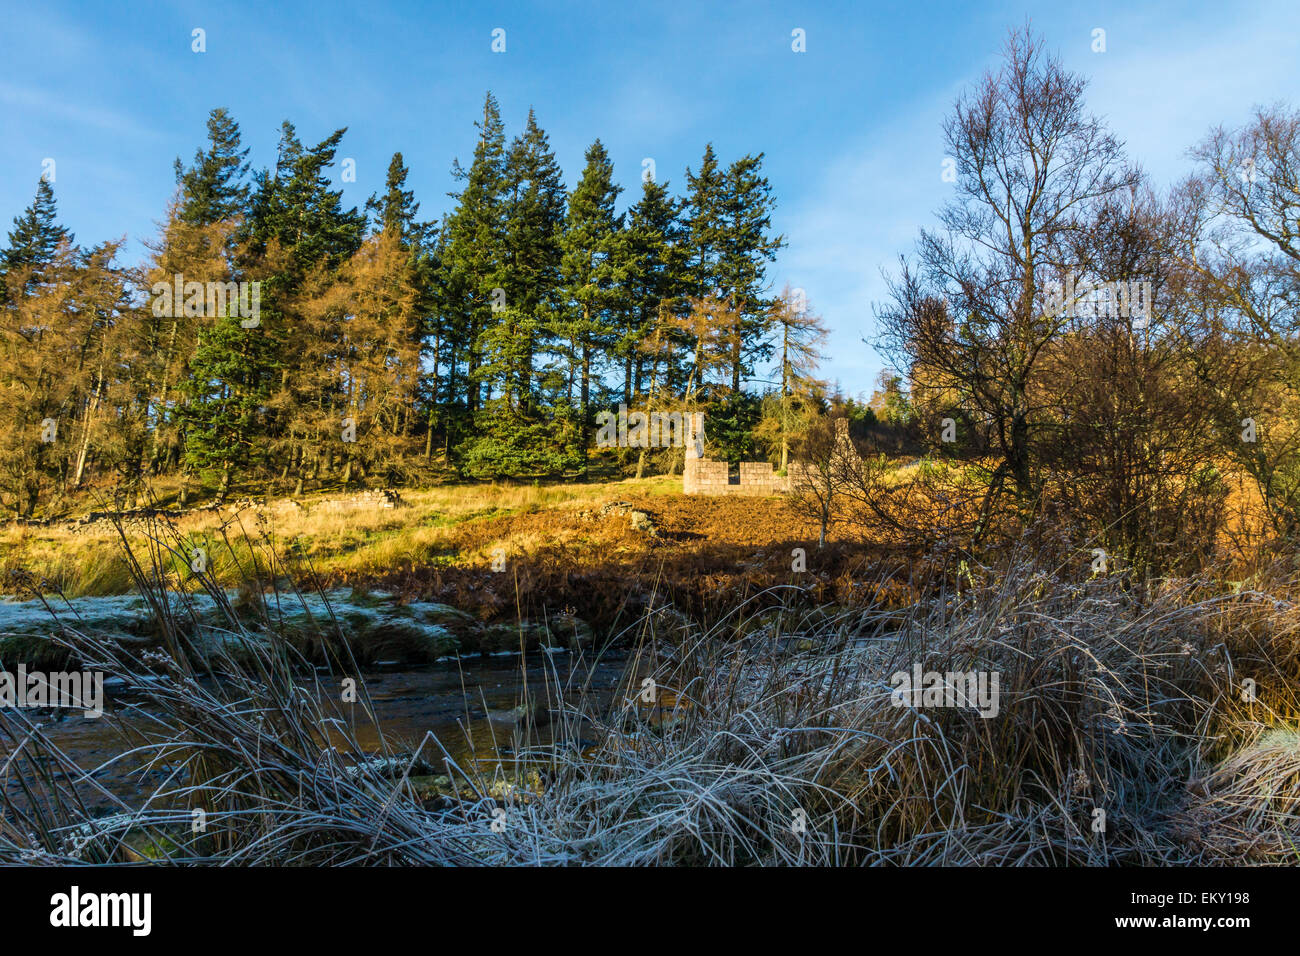 The ruined croft, Spital Cott, in Aberdeenshire, Scotland. - Stock Image